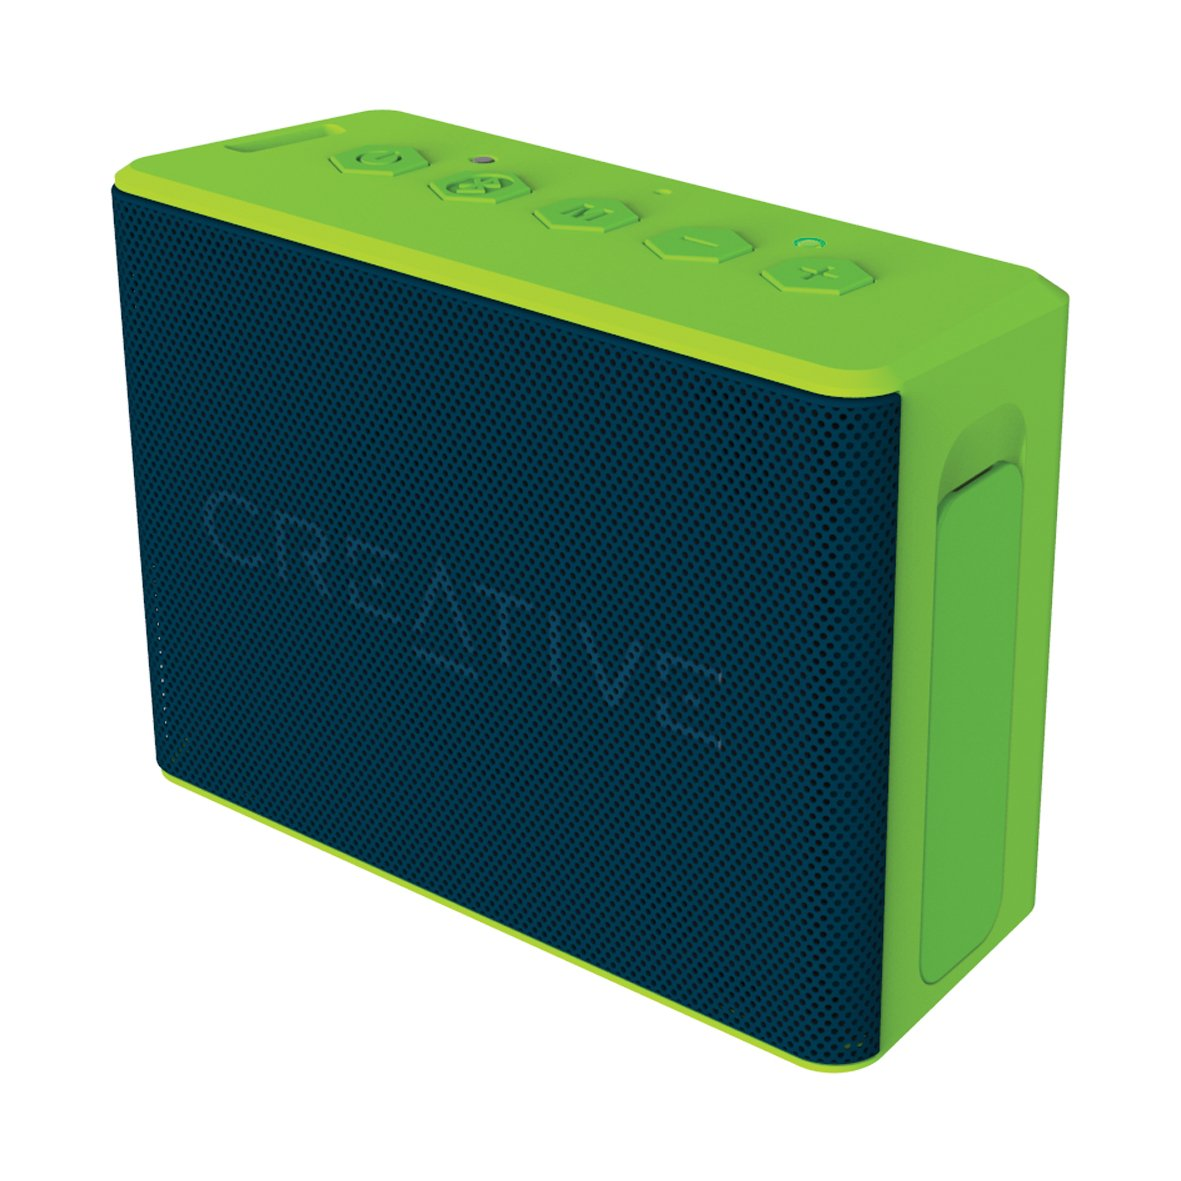 Creative Labs MUVO 2c Stereo Rectangle Green